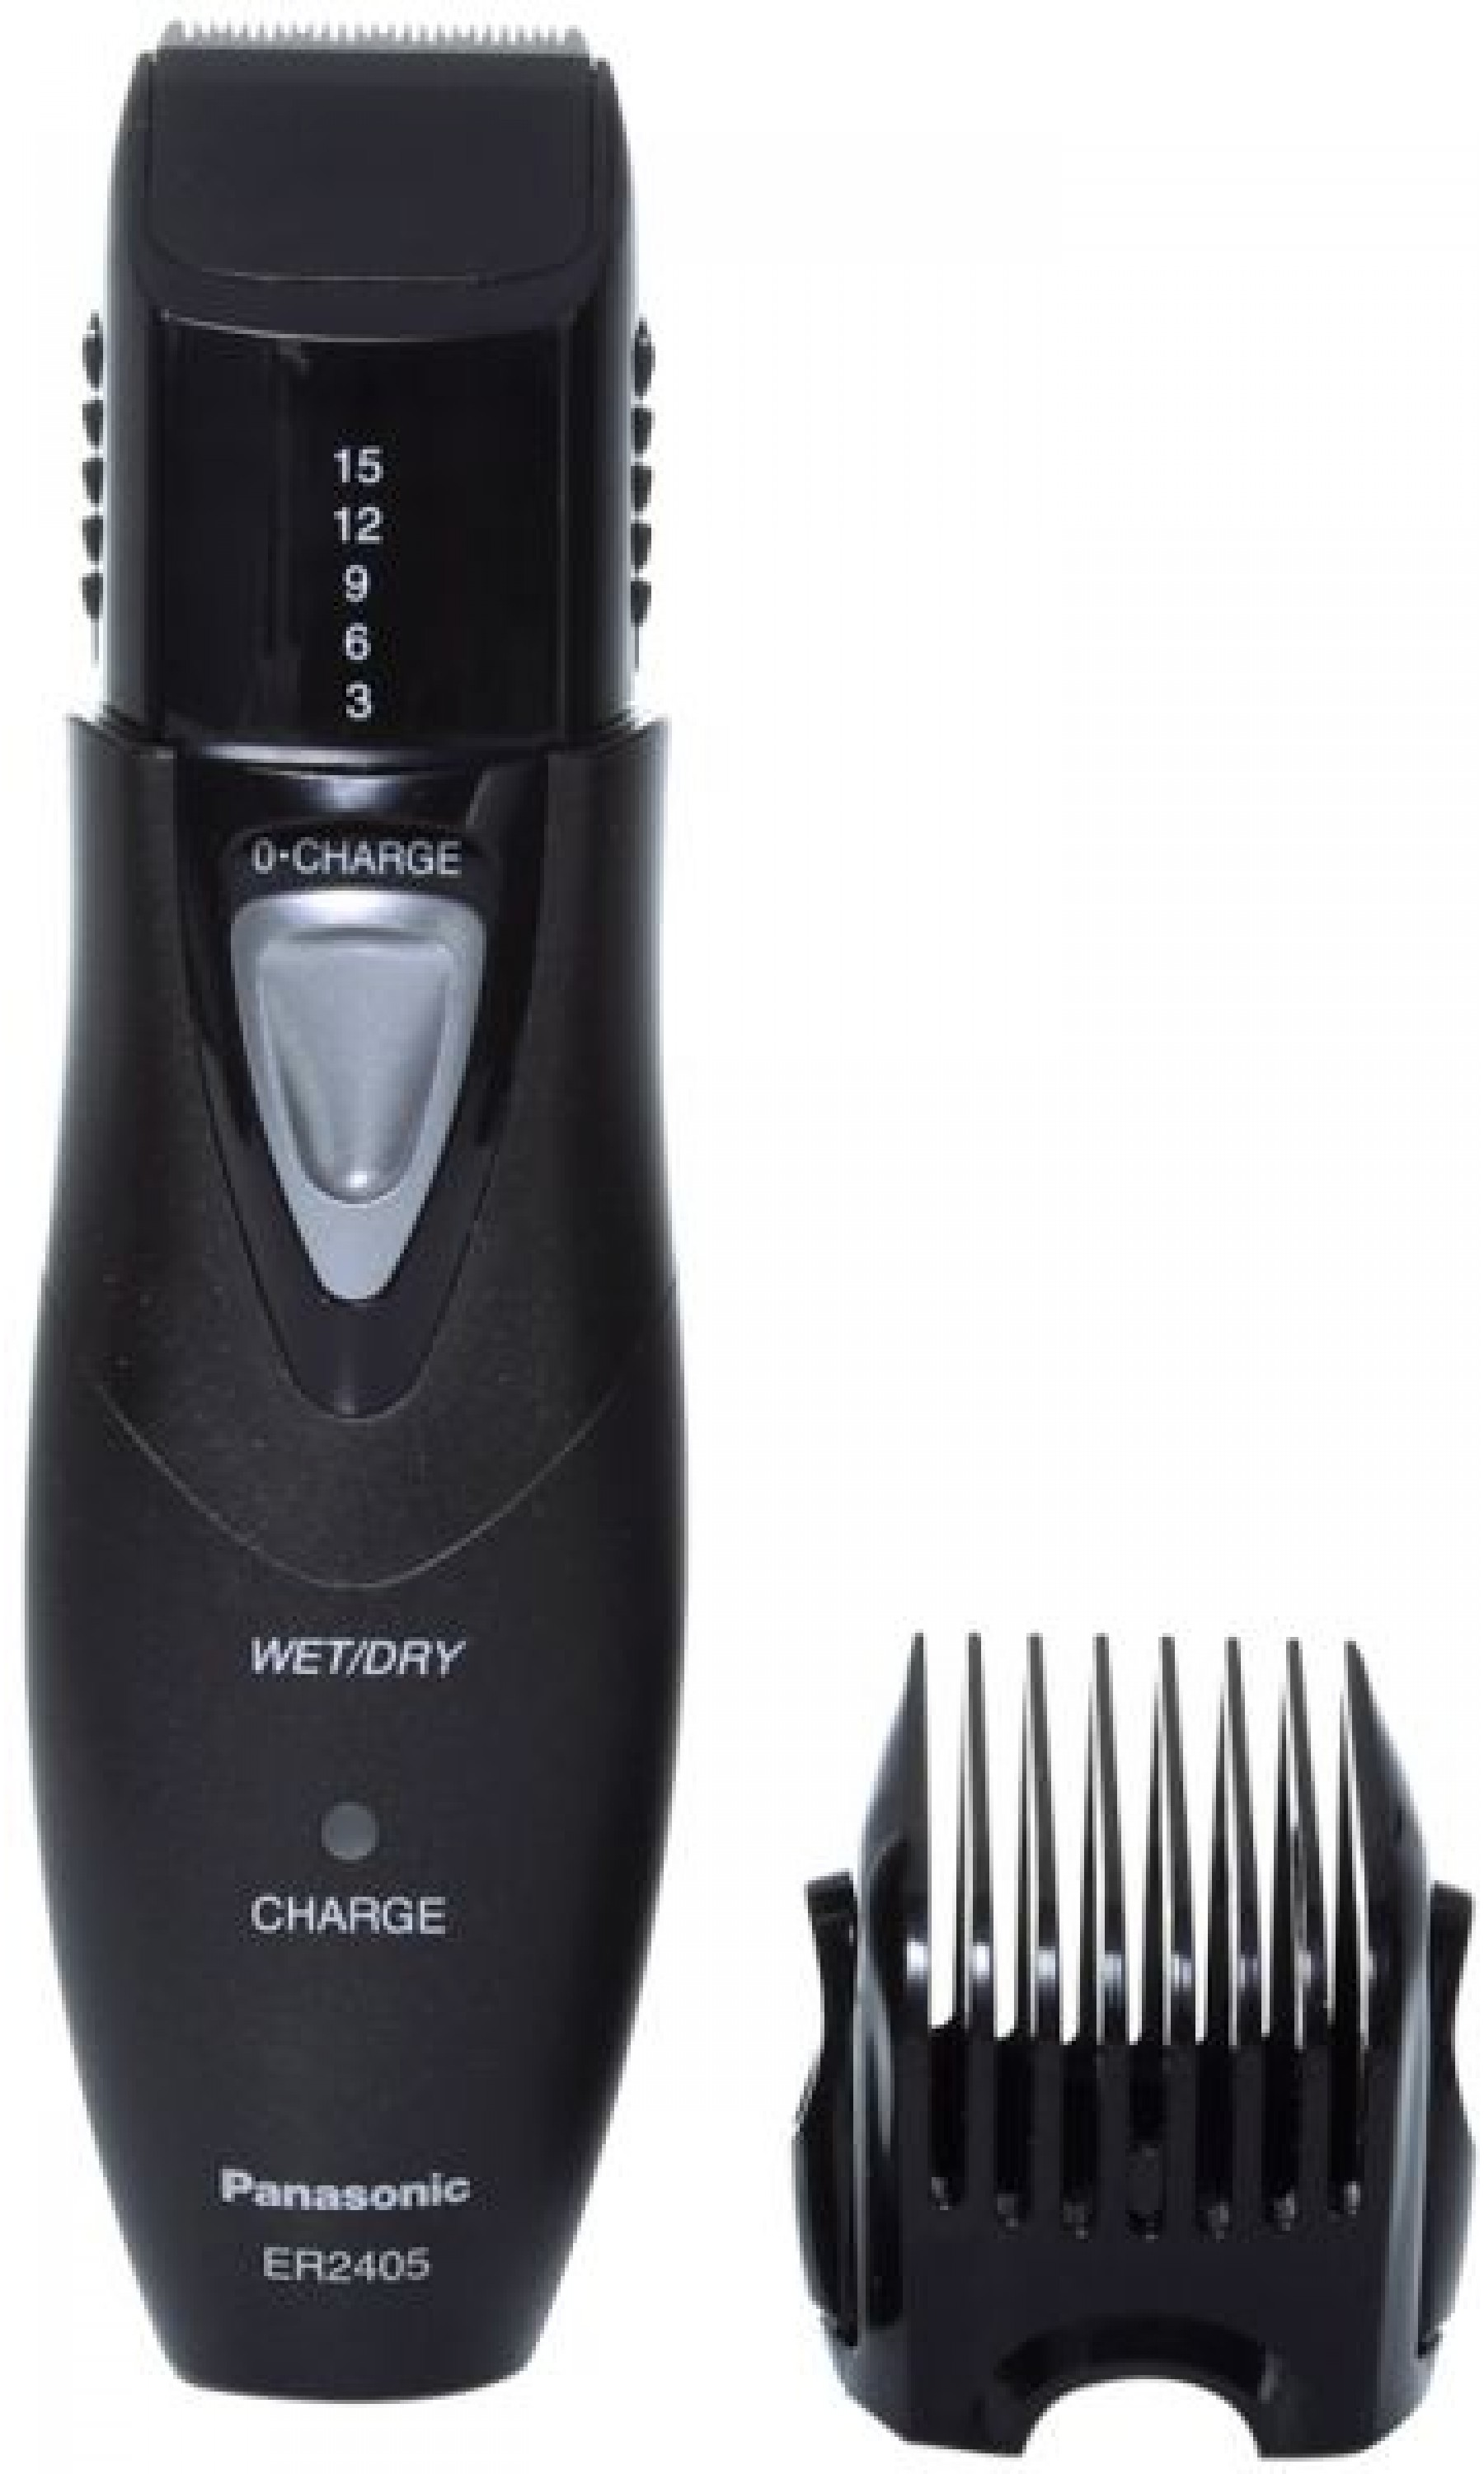 Panasonic Rechargeable Beard & Body Hair Trimmer, ER2405